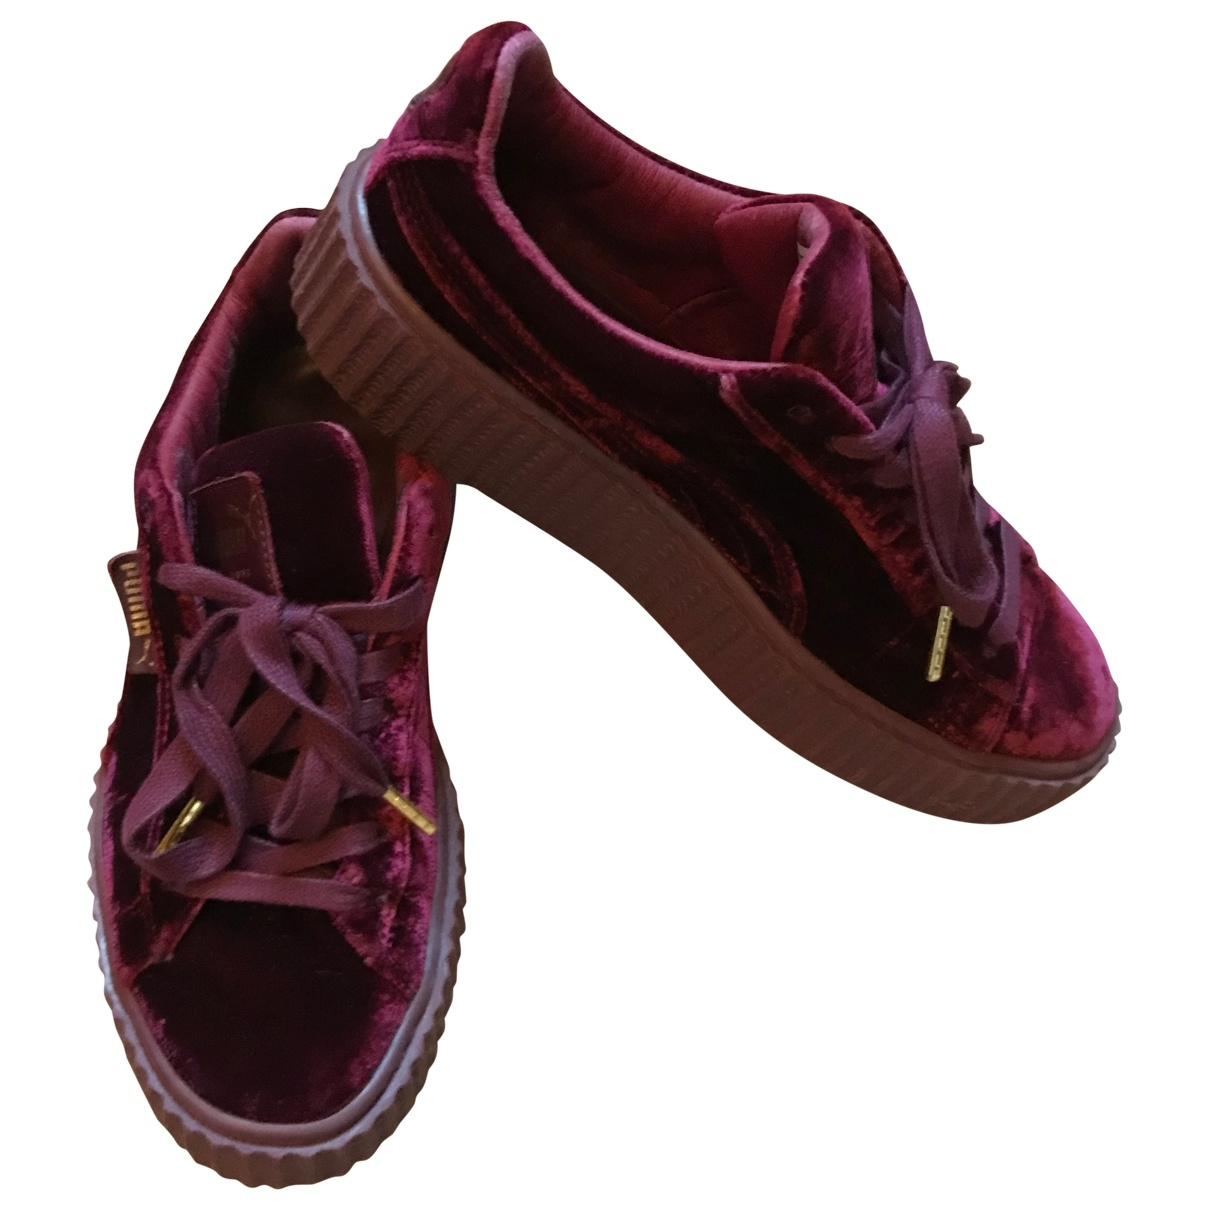 Fenty X Puma \N Burgundy Velvet Trainers for Women 38 EU